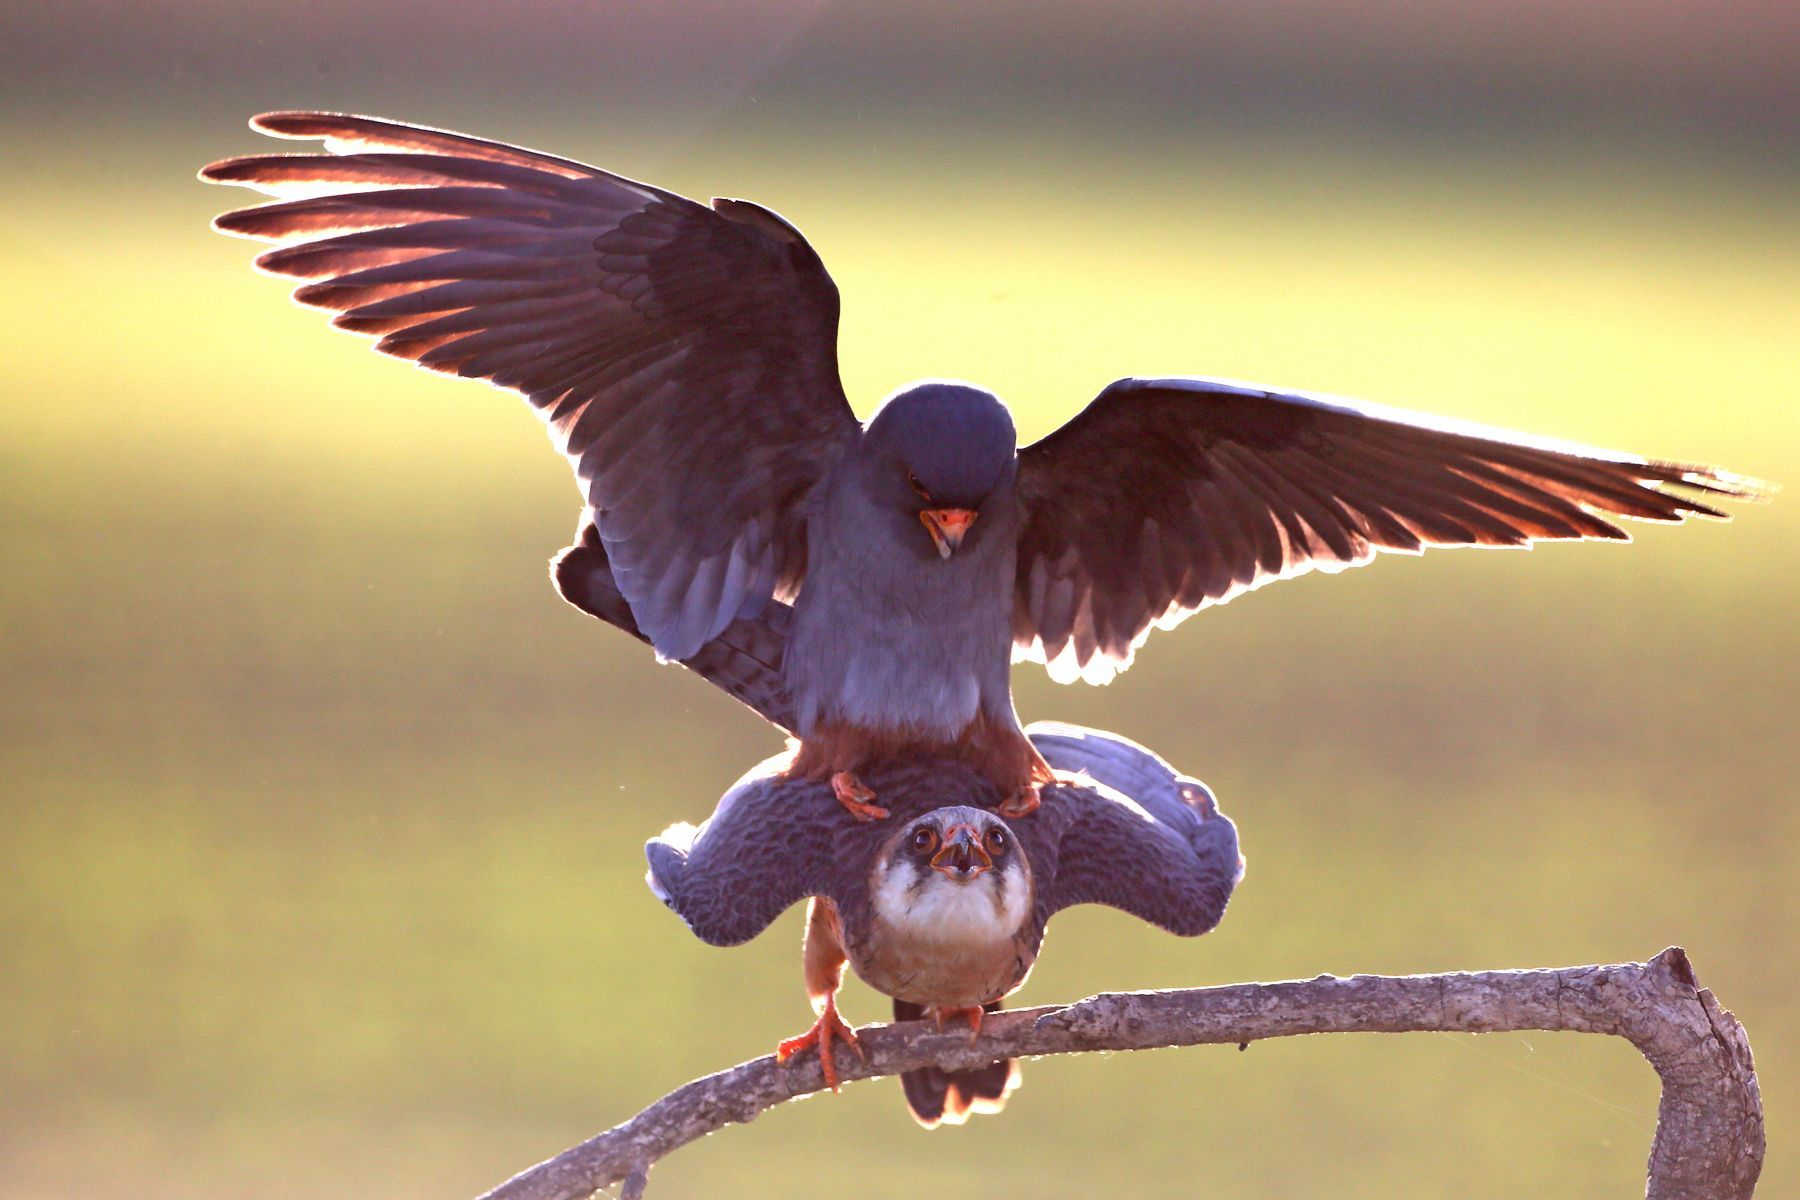 Mating Red-footed Falcons is another classic photography draw